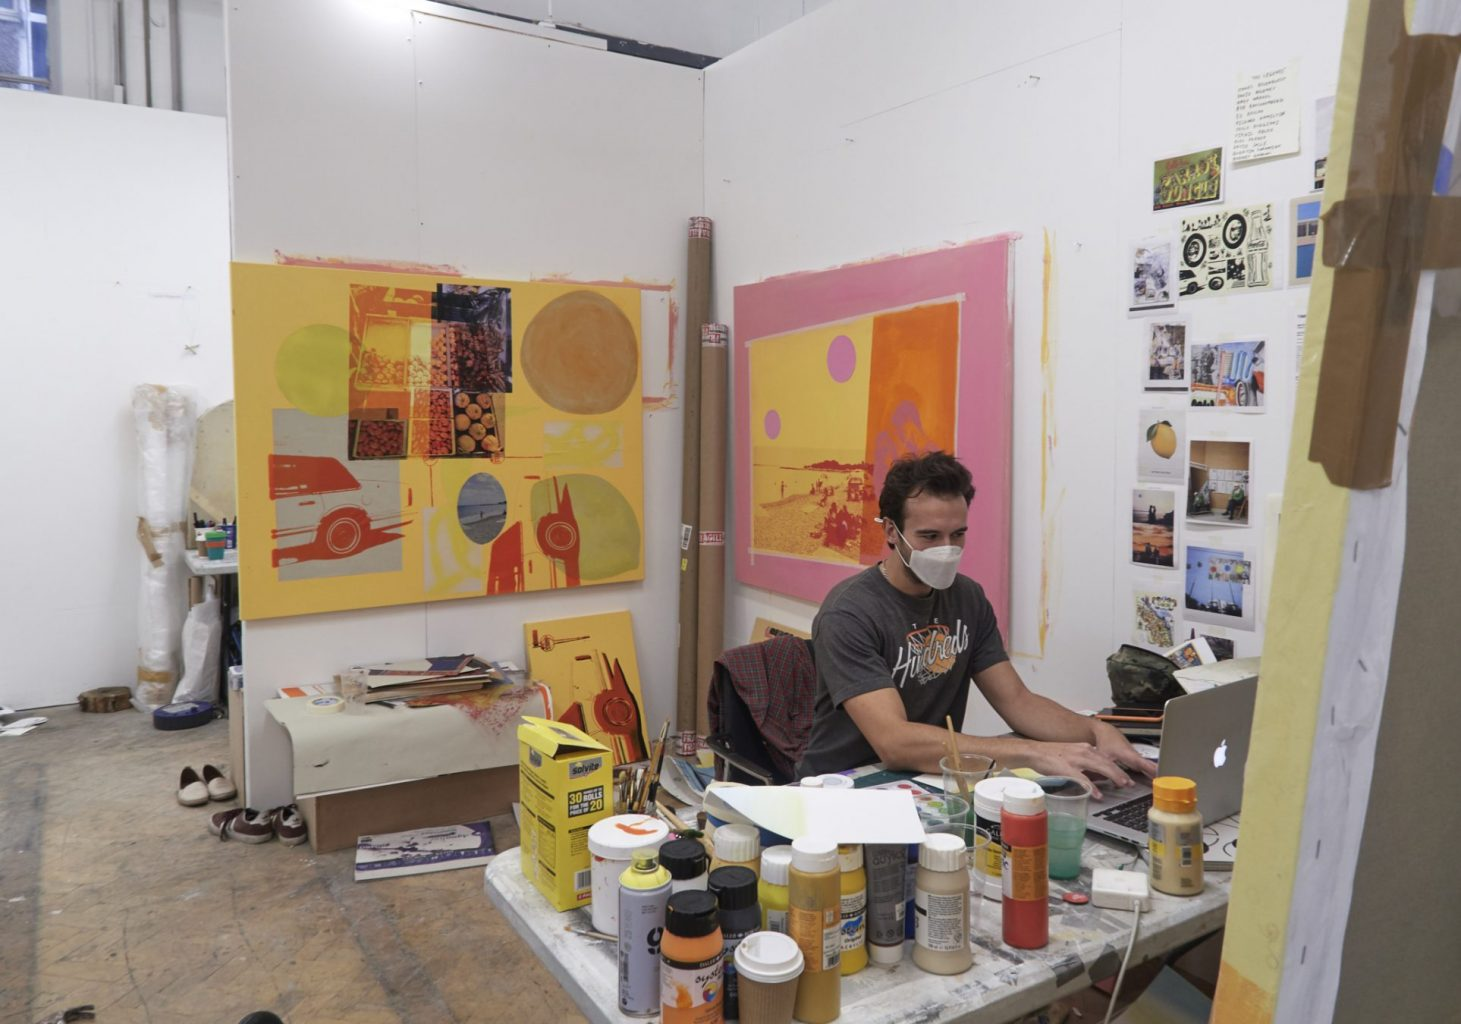 How can an Art School function during a global pandemic? - MA Fine Art student in studio